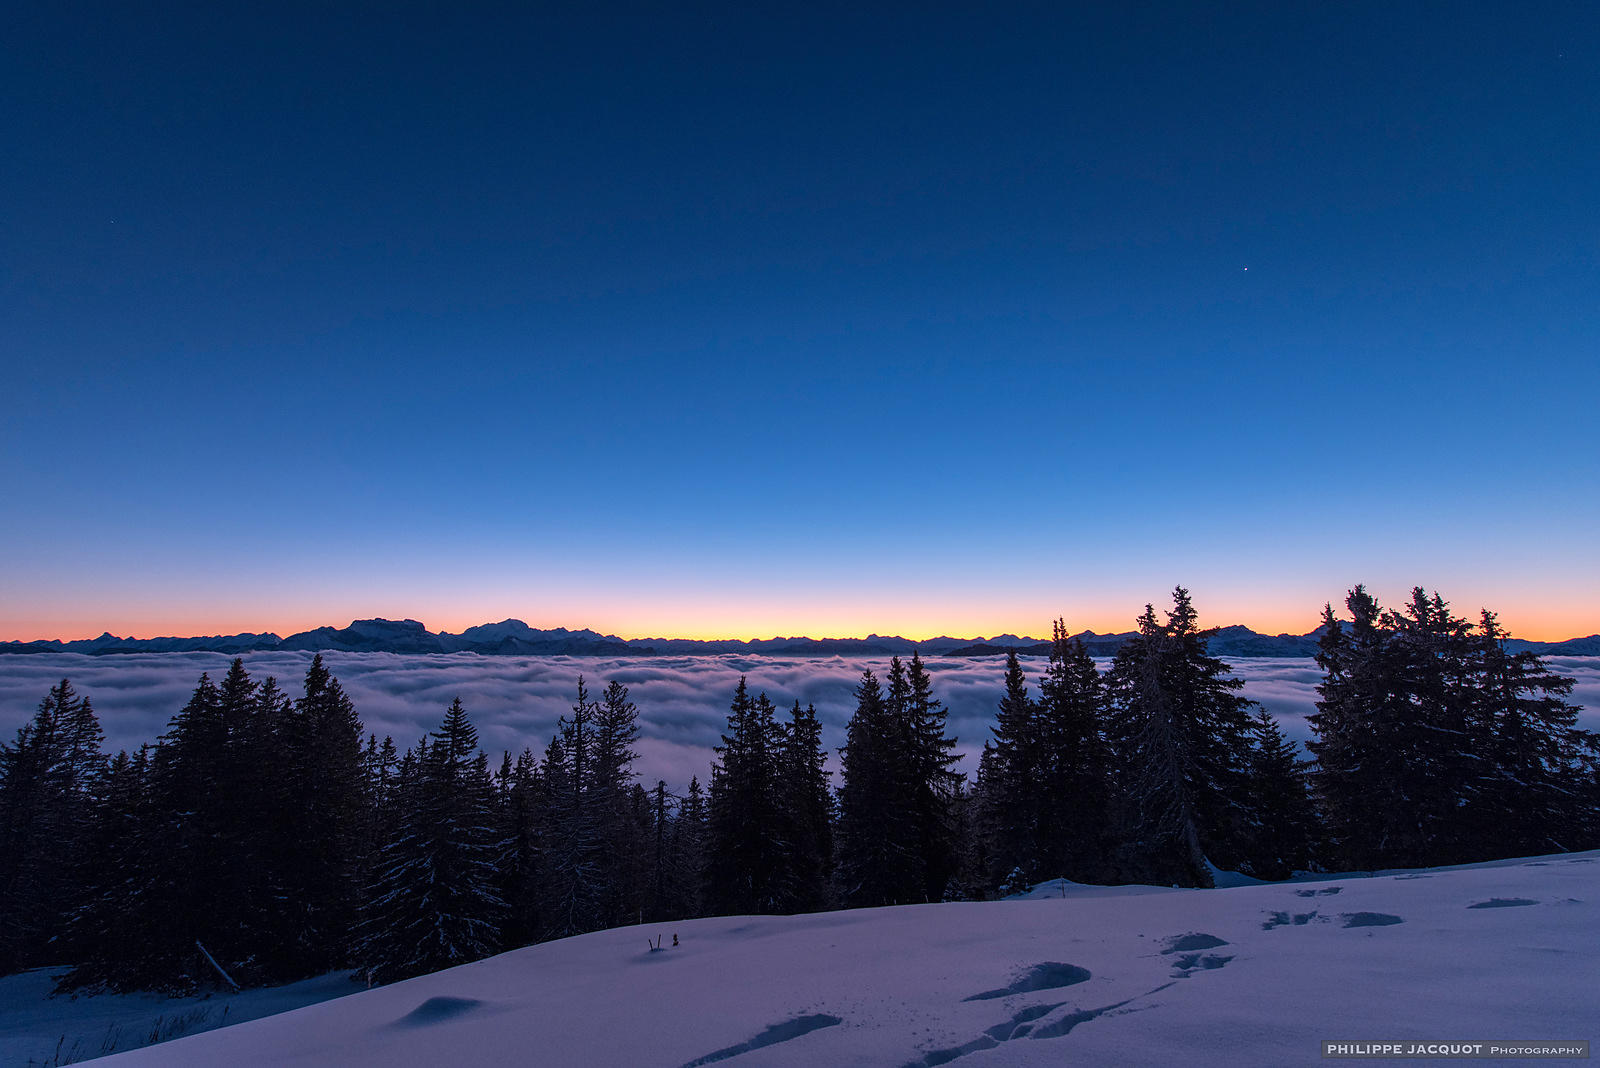 Clear dawn - Annecy Semnoz